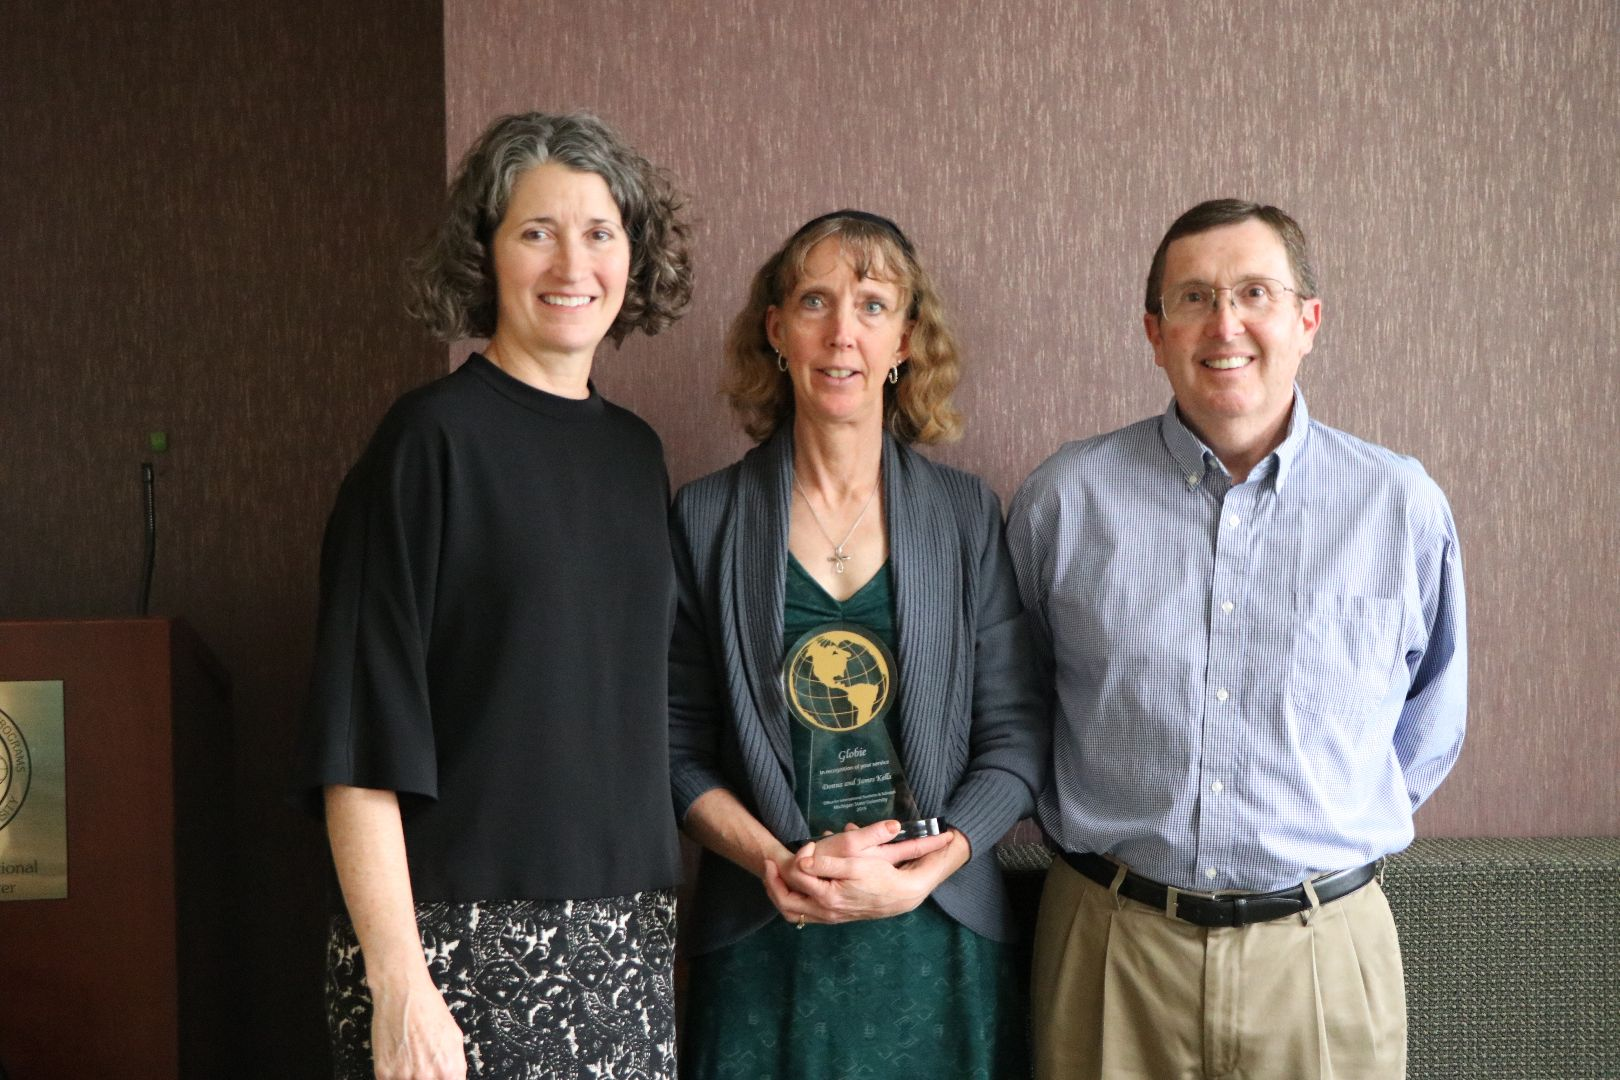 Two women and one man stand together, couple is receiving their Globie Award trophy.